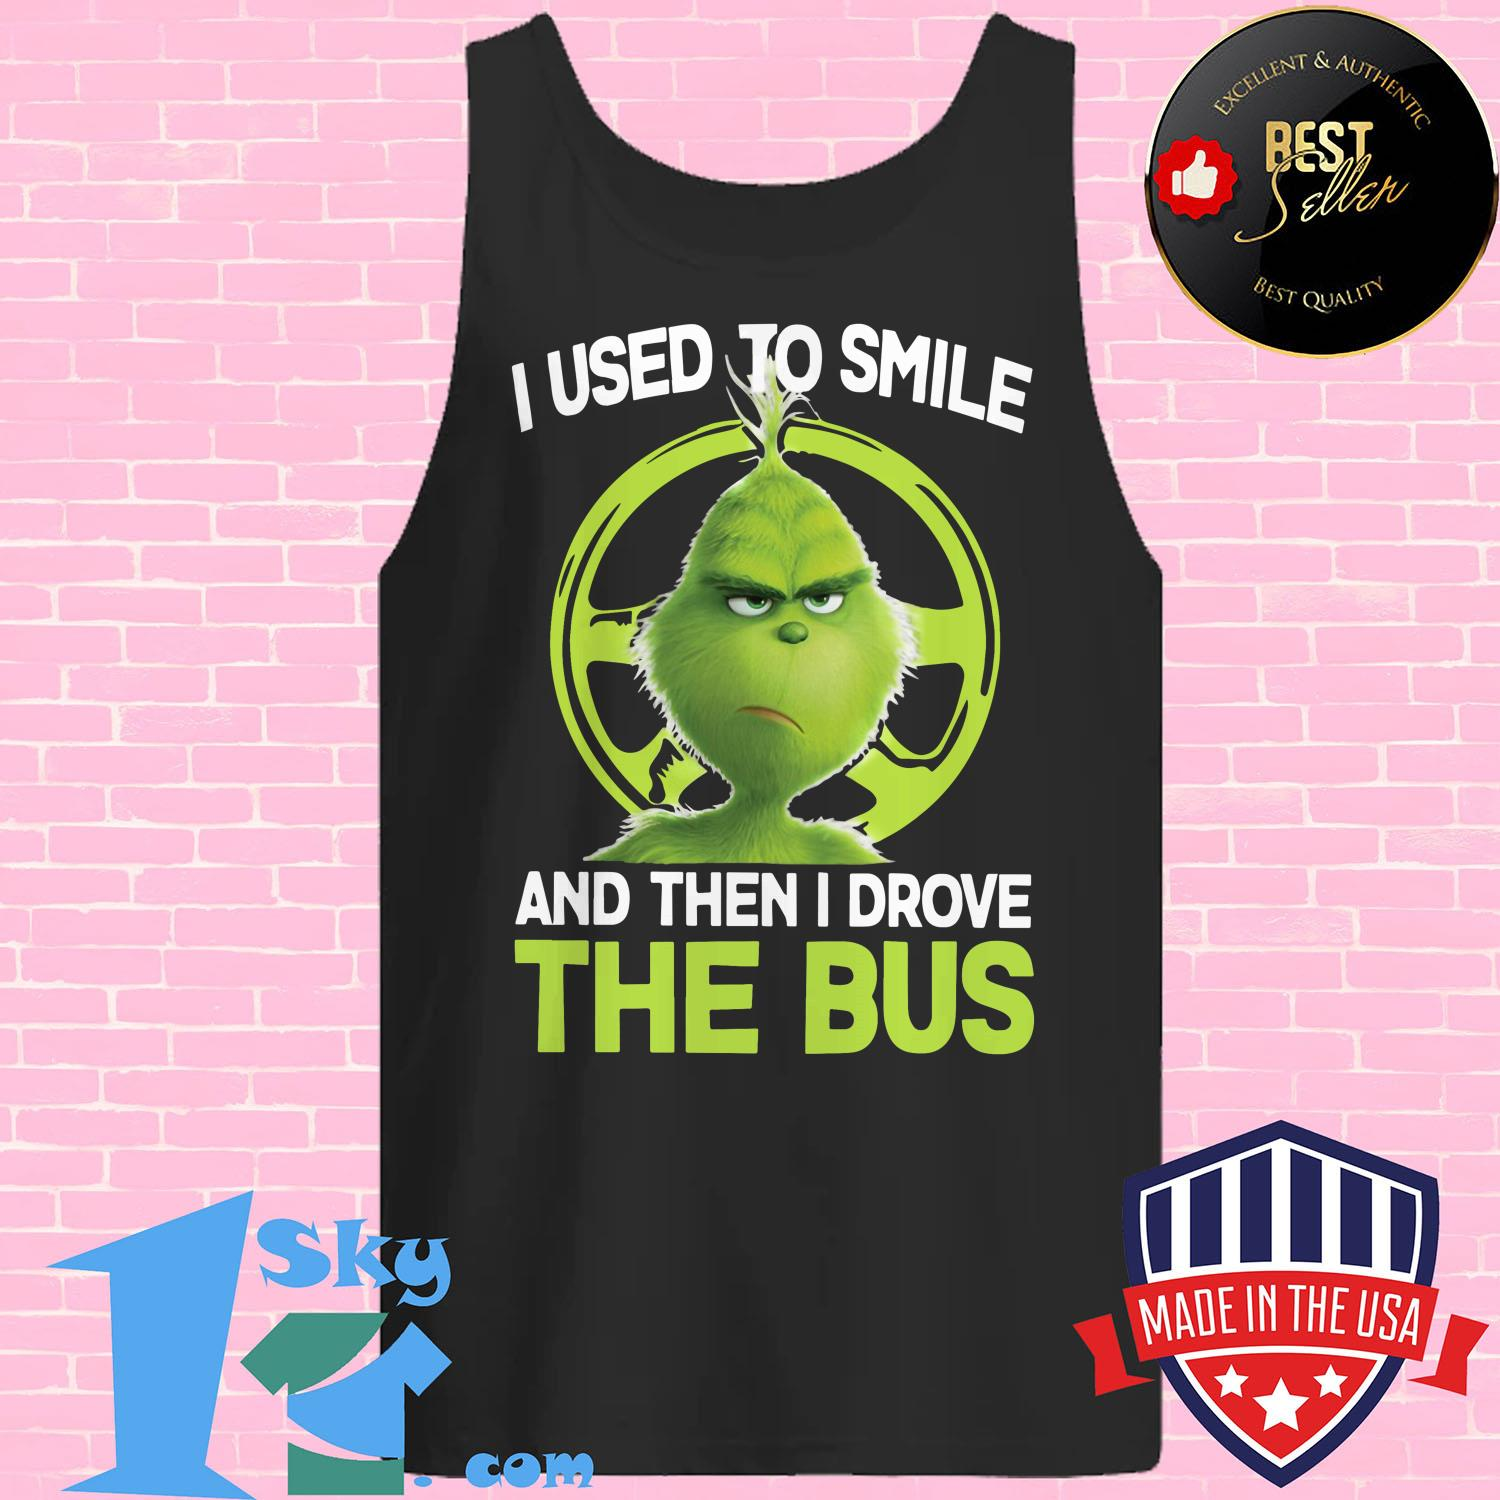 the grinch i used to smile and then i drove the bus tank top - The Grinch I Used To Smile And Then I Drove The Bus shirt